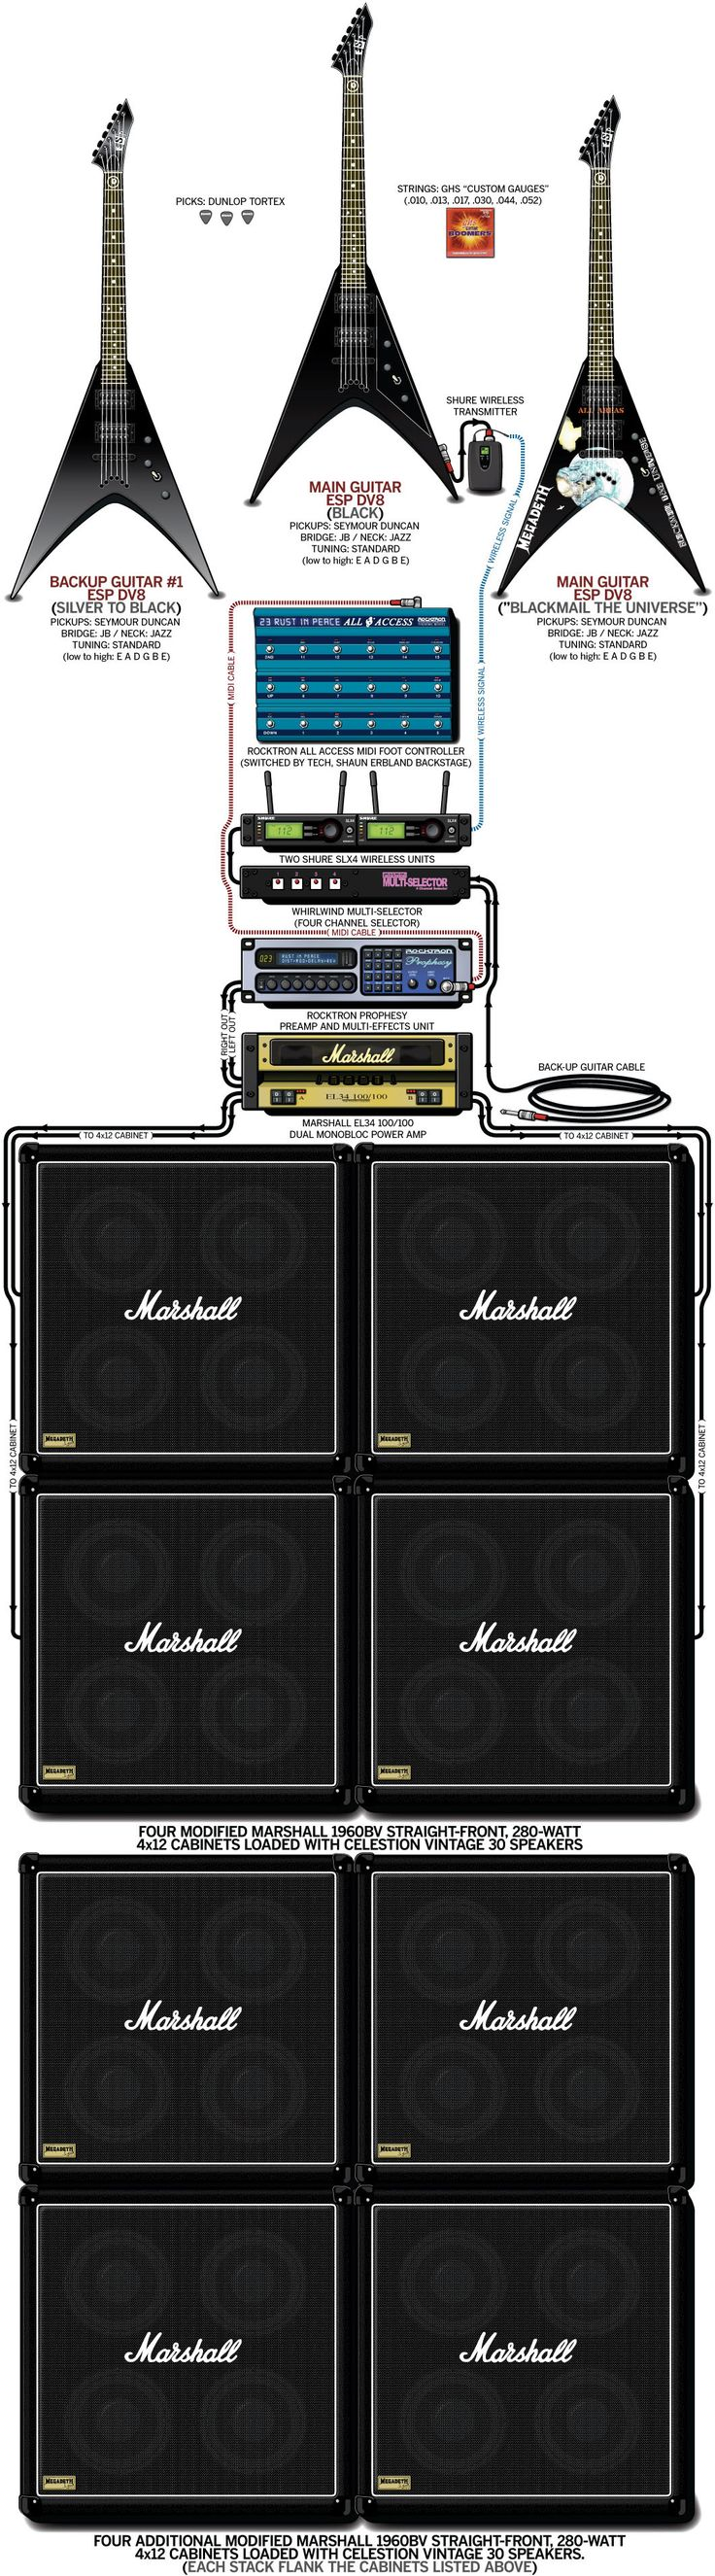 A detailed gear diagram of Dave Mustaine's 2004 Megadeth stage setup that traces the signal flow of the equipment in his guitar rig.